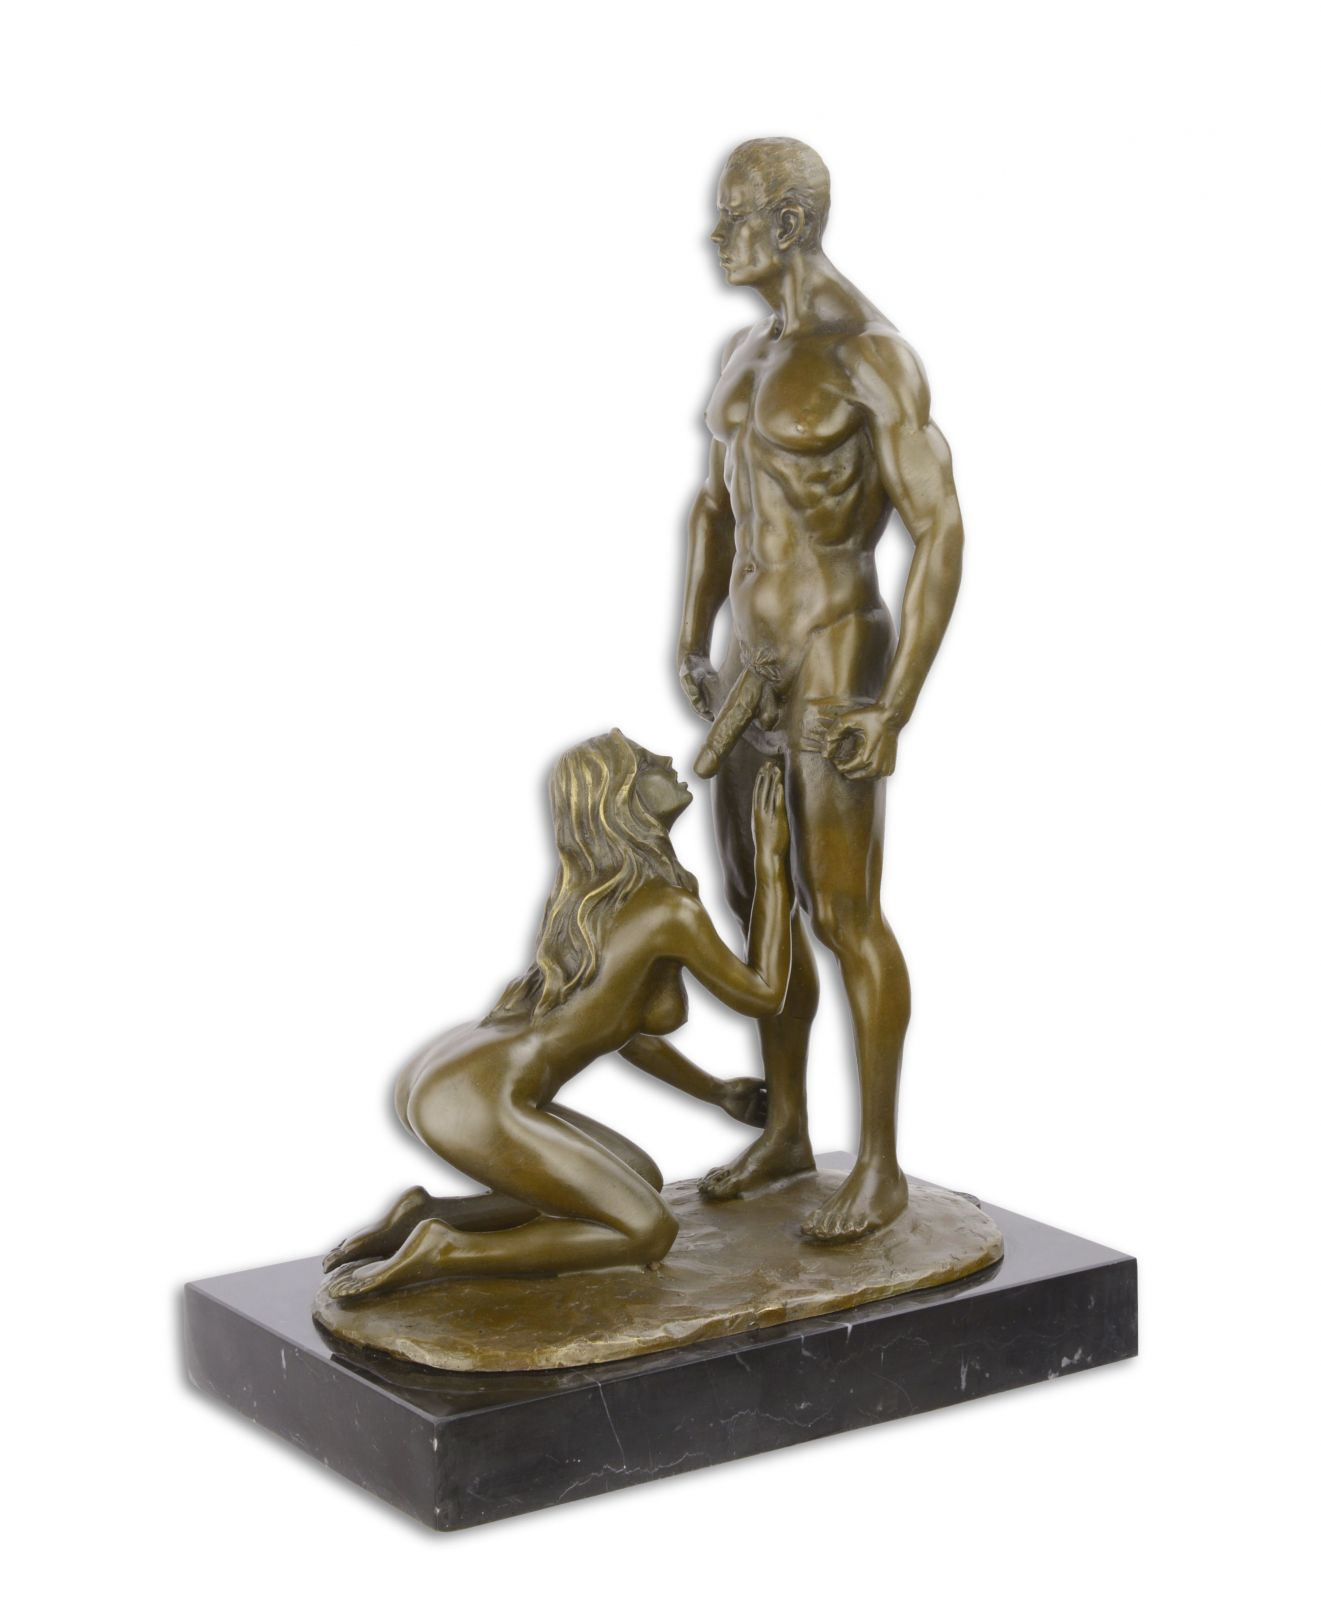 Erotic statue made from bronze